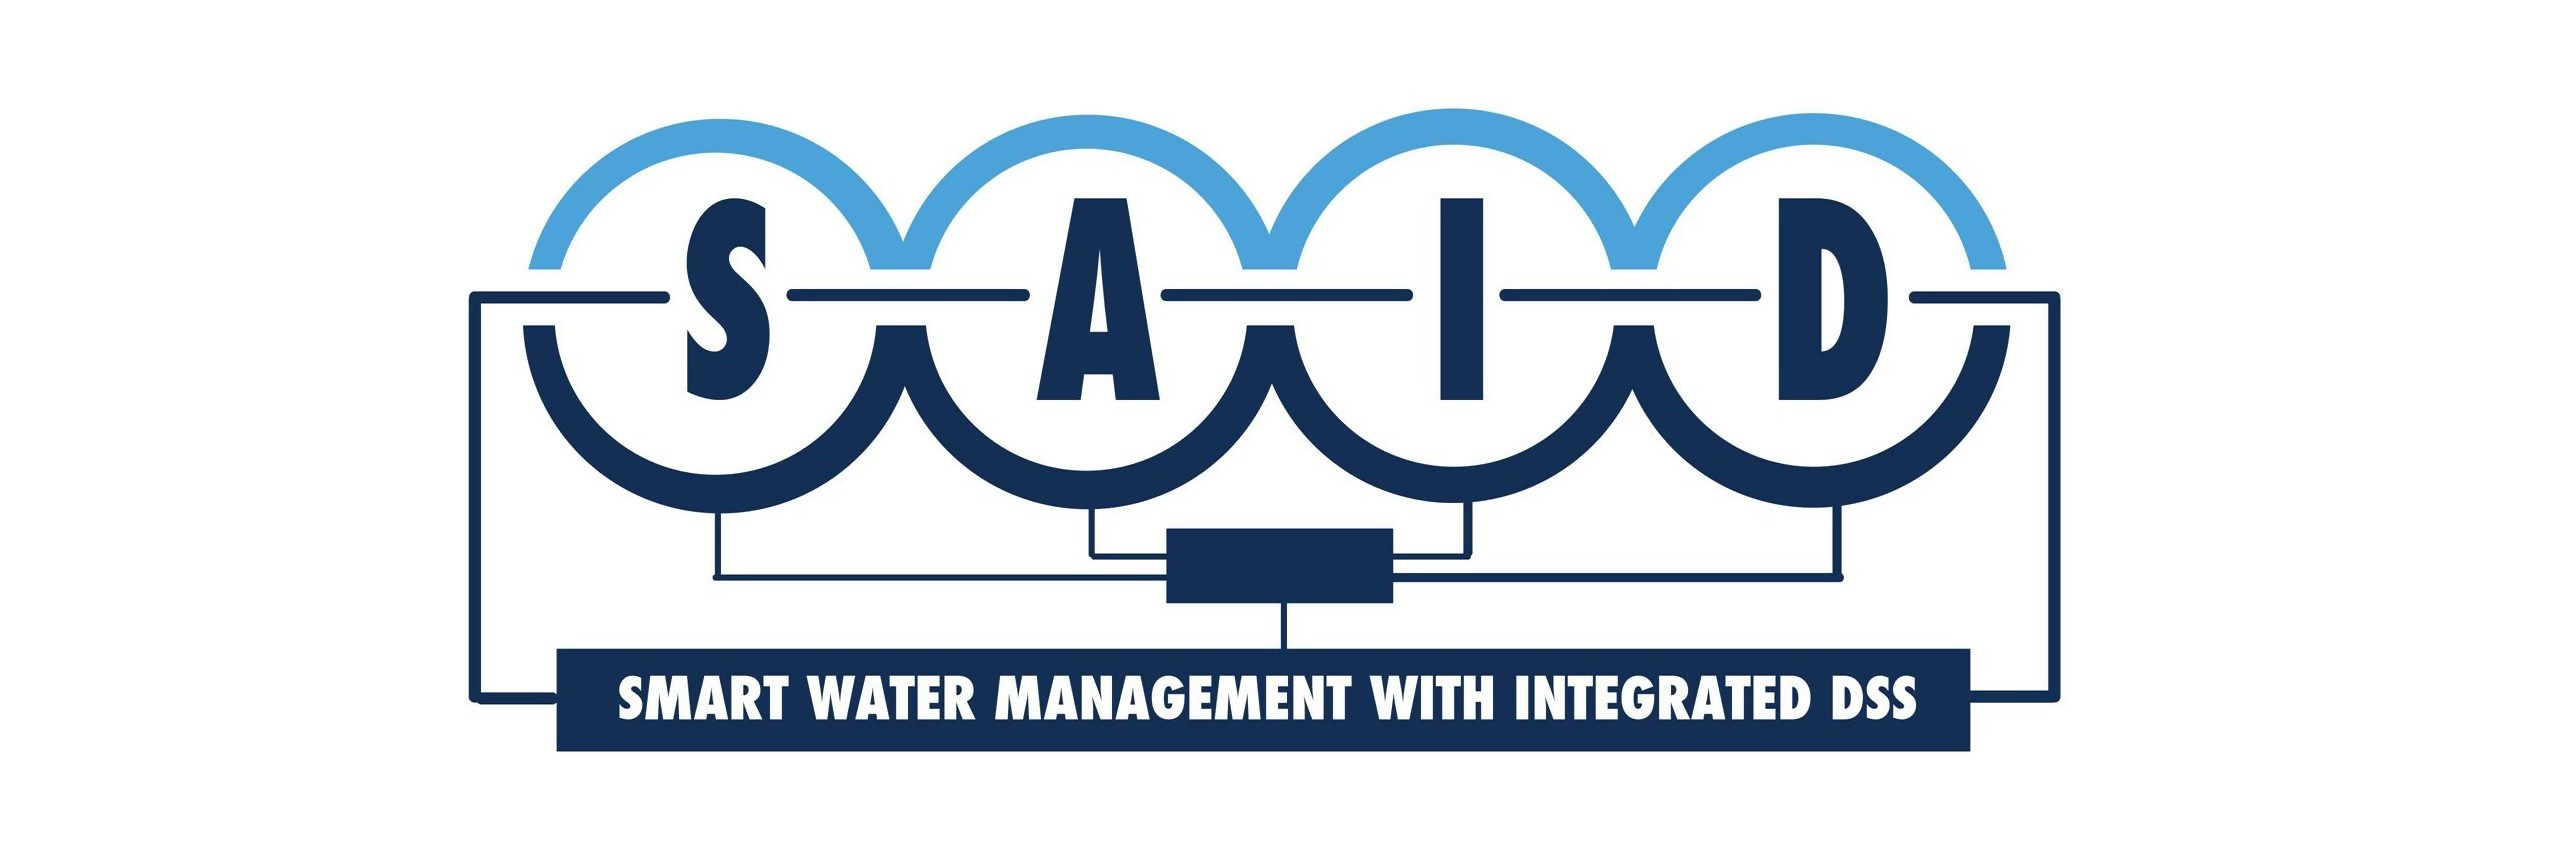 SAID: Smart Water Management